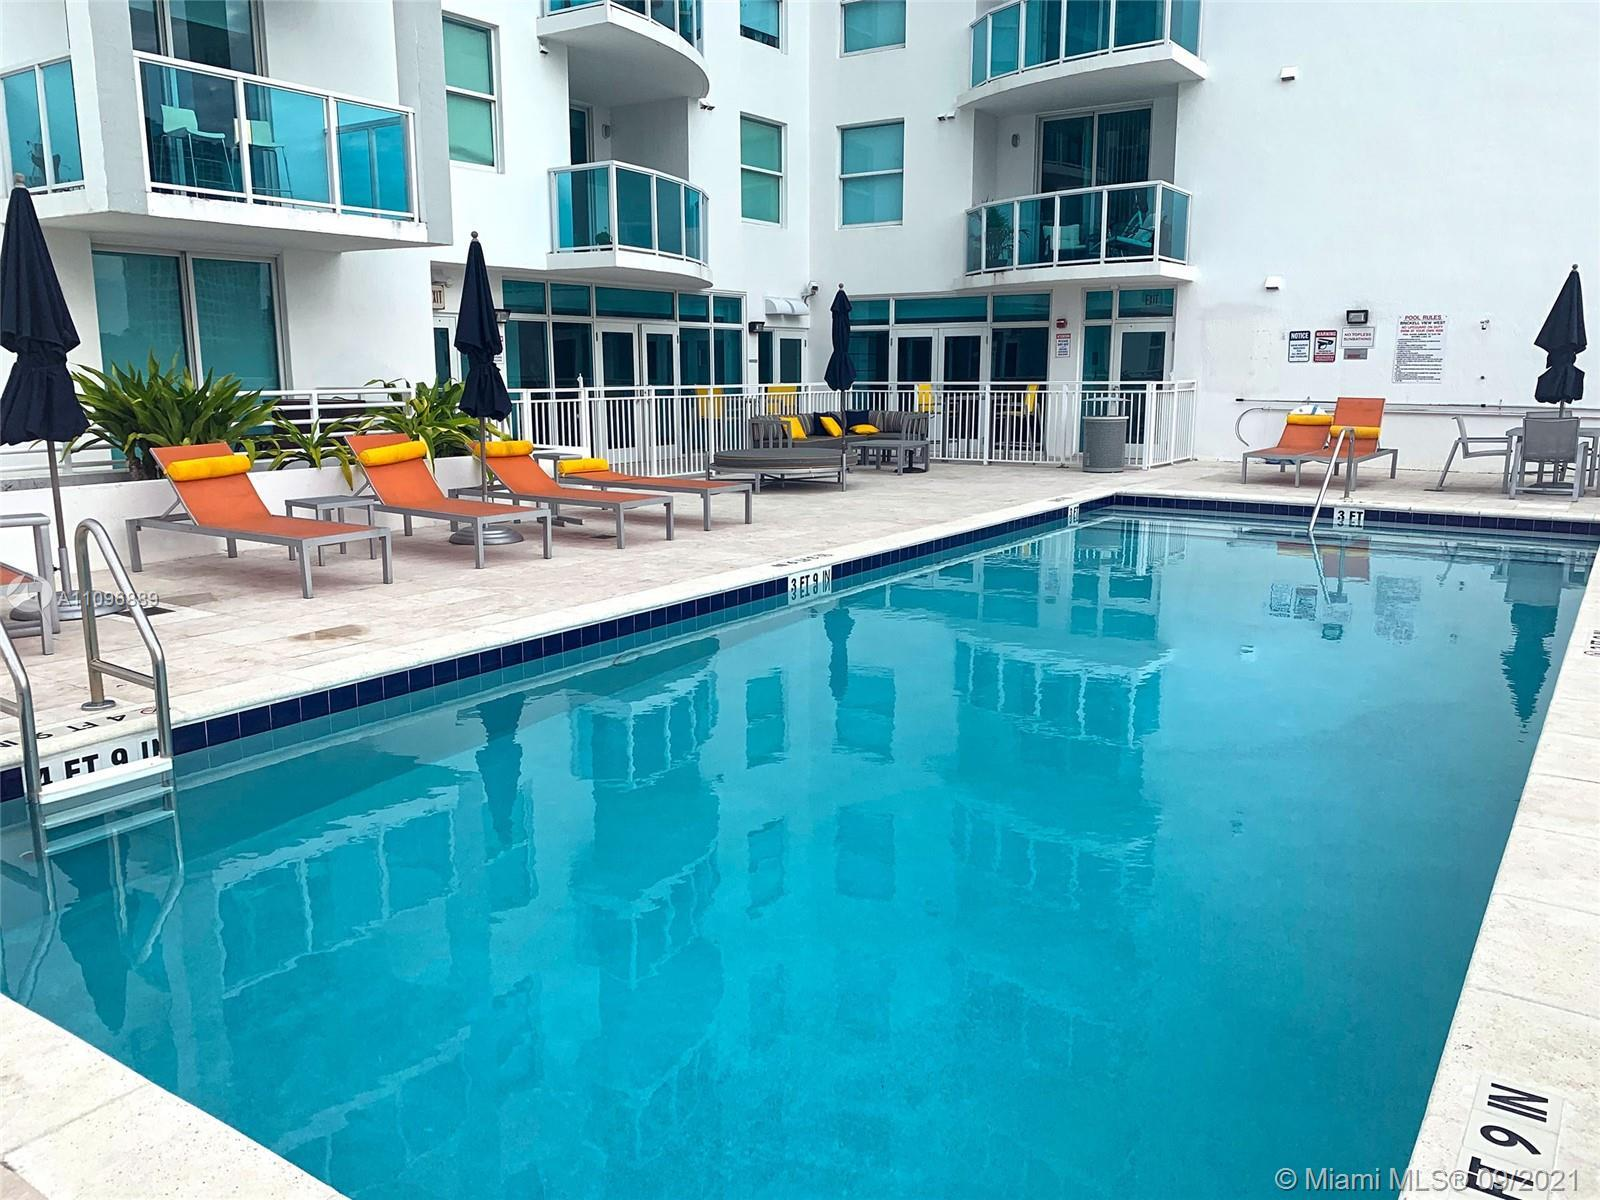 Apartment is rented through April 2022 for $1,700 per month. Fantastic 1bed/1bath unit in phenomenal